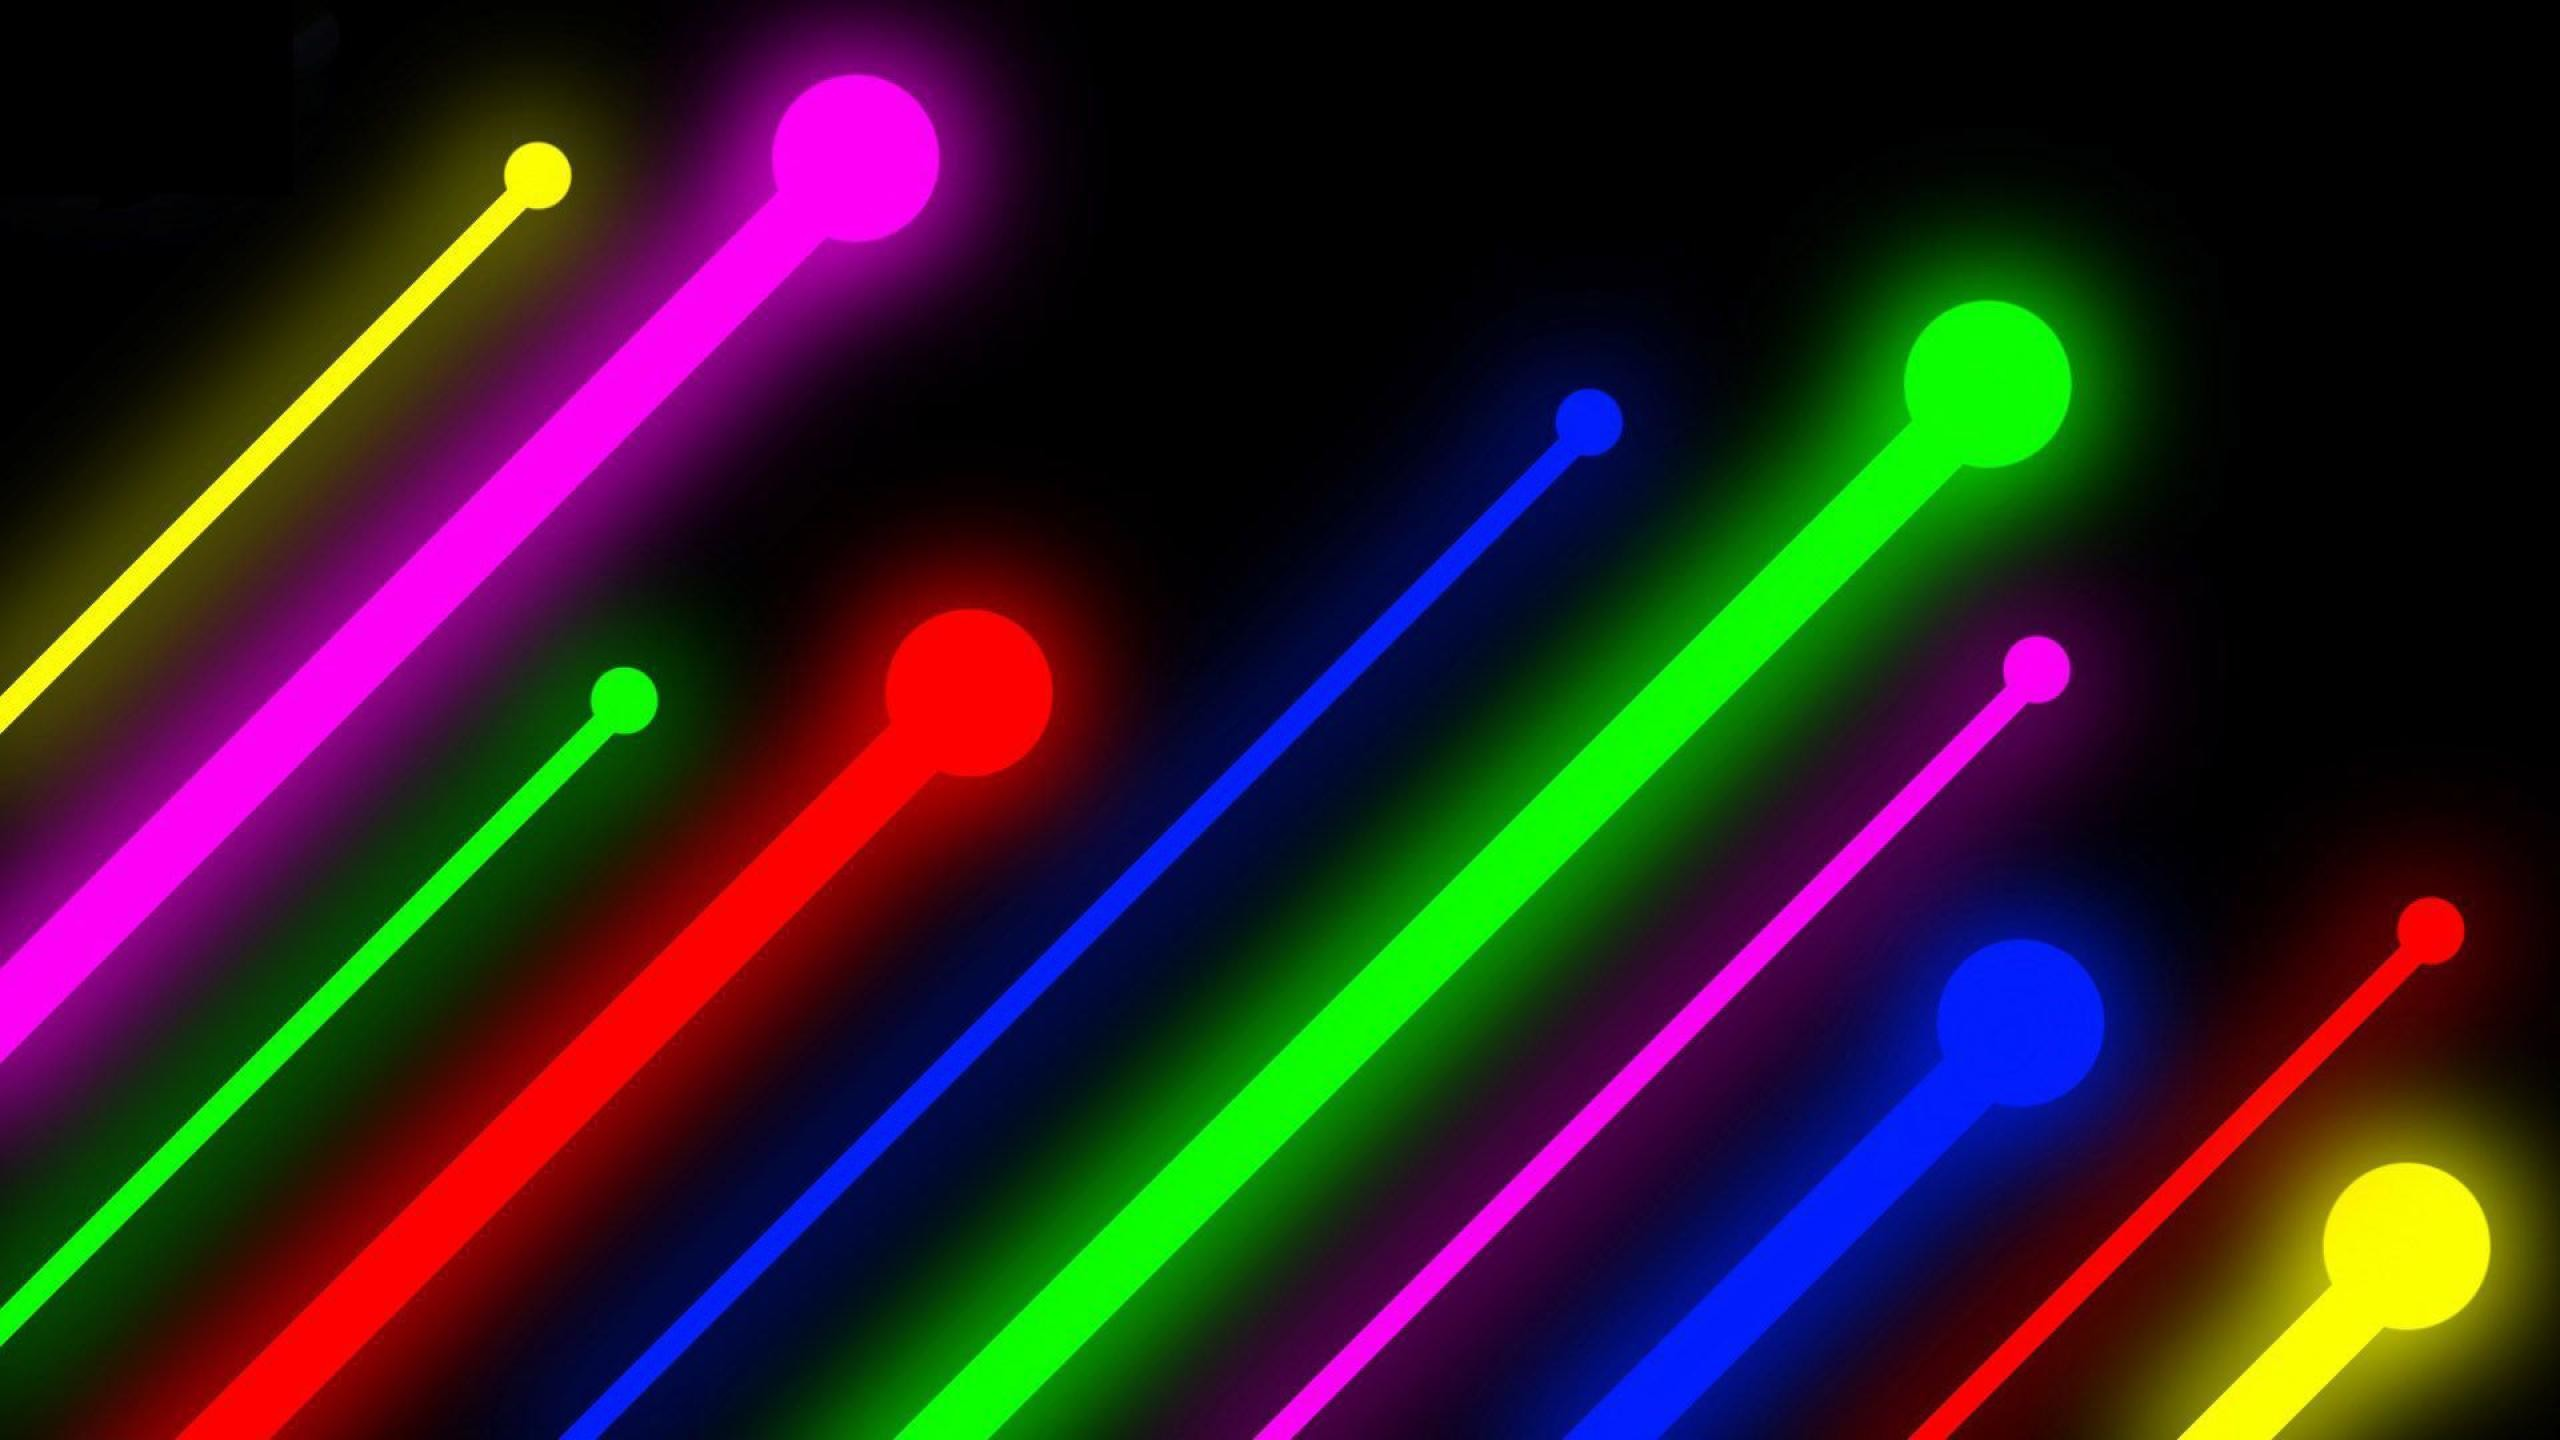 Abstract Neon Wallpaper 64 Images